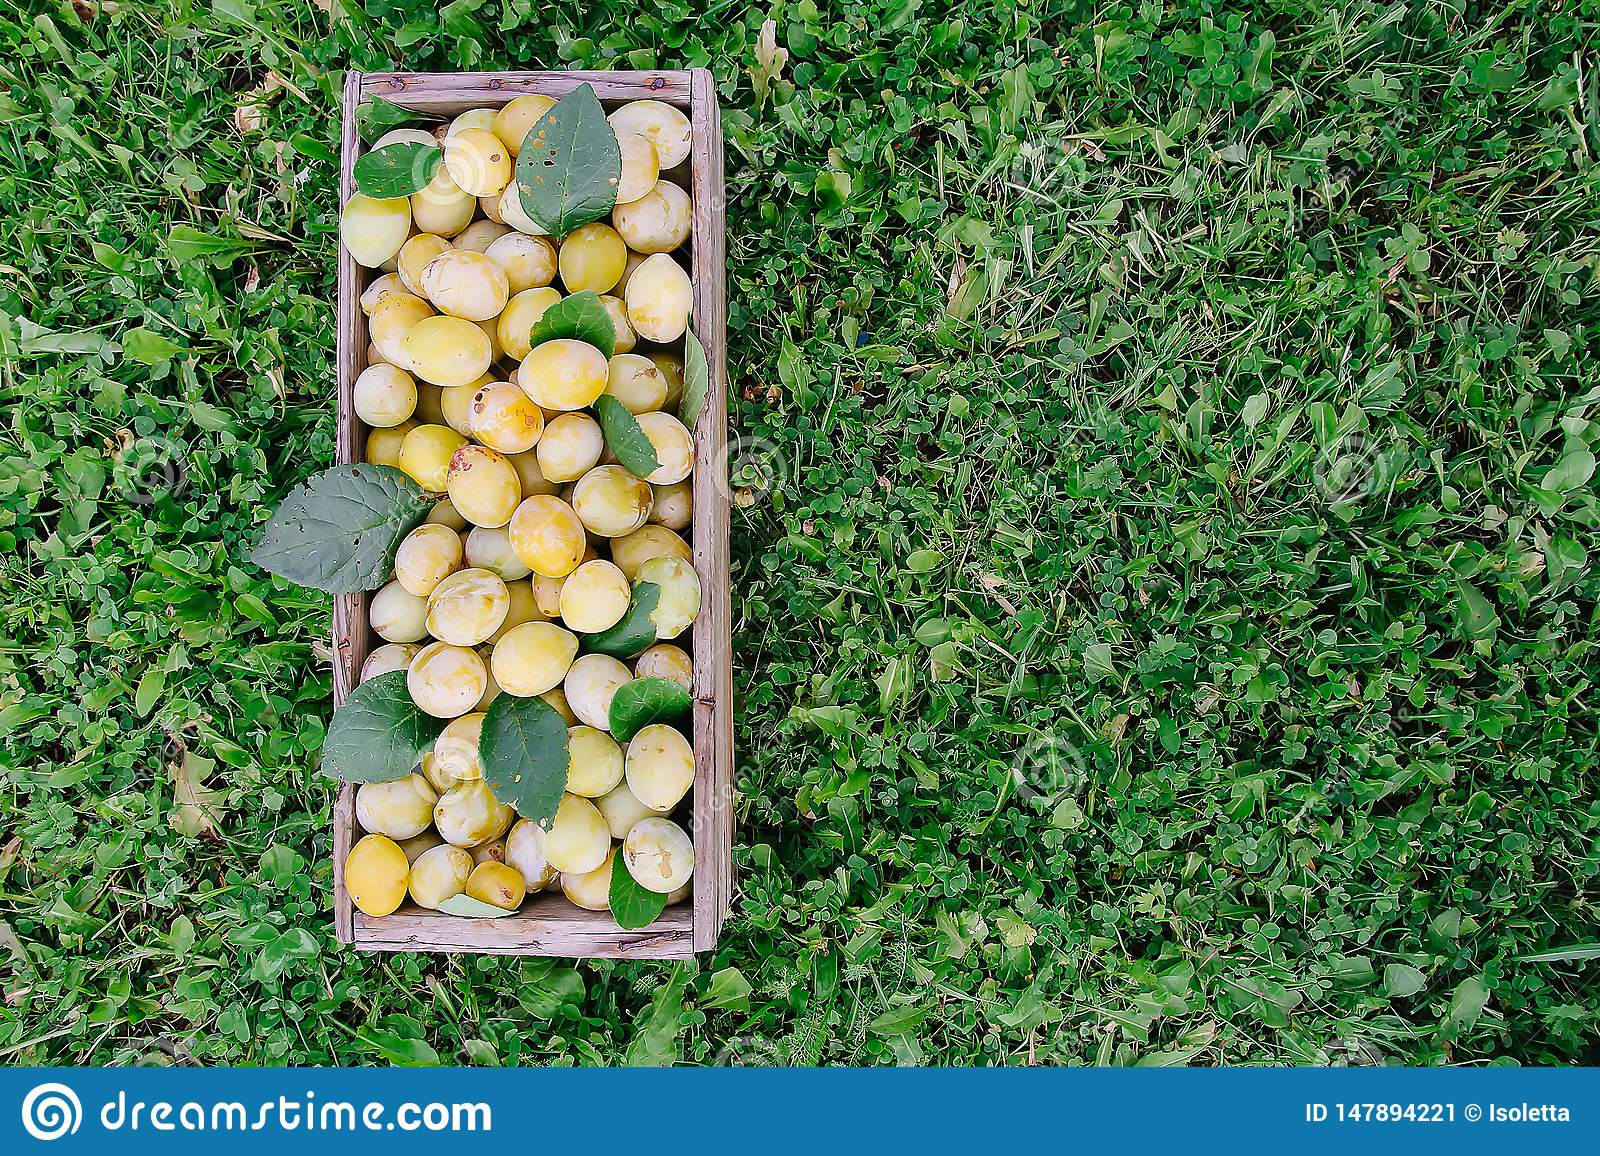 Fresh yellow plums. Ripe fruits in a wooden box on grass